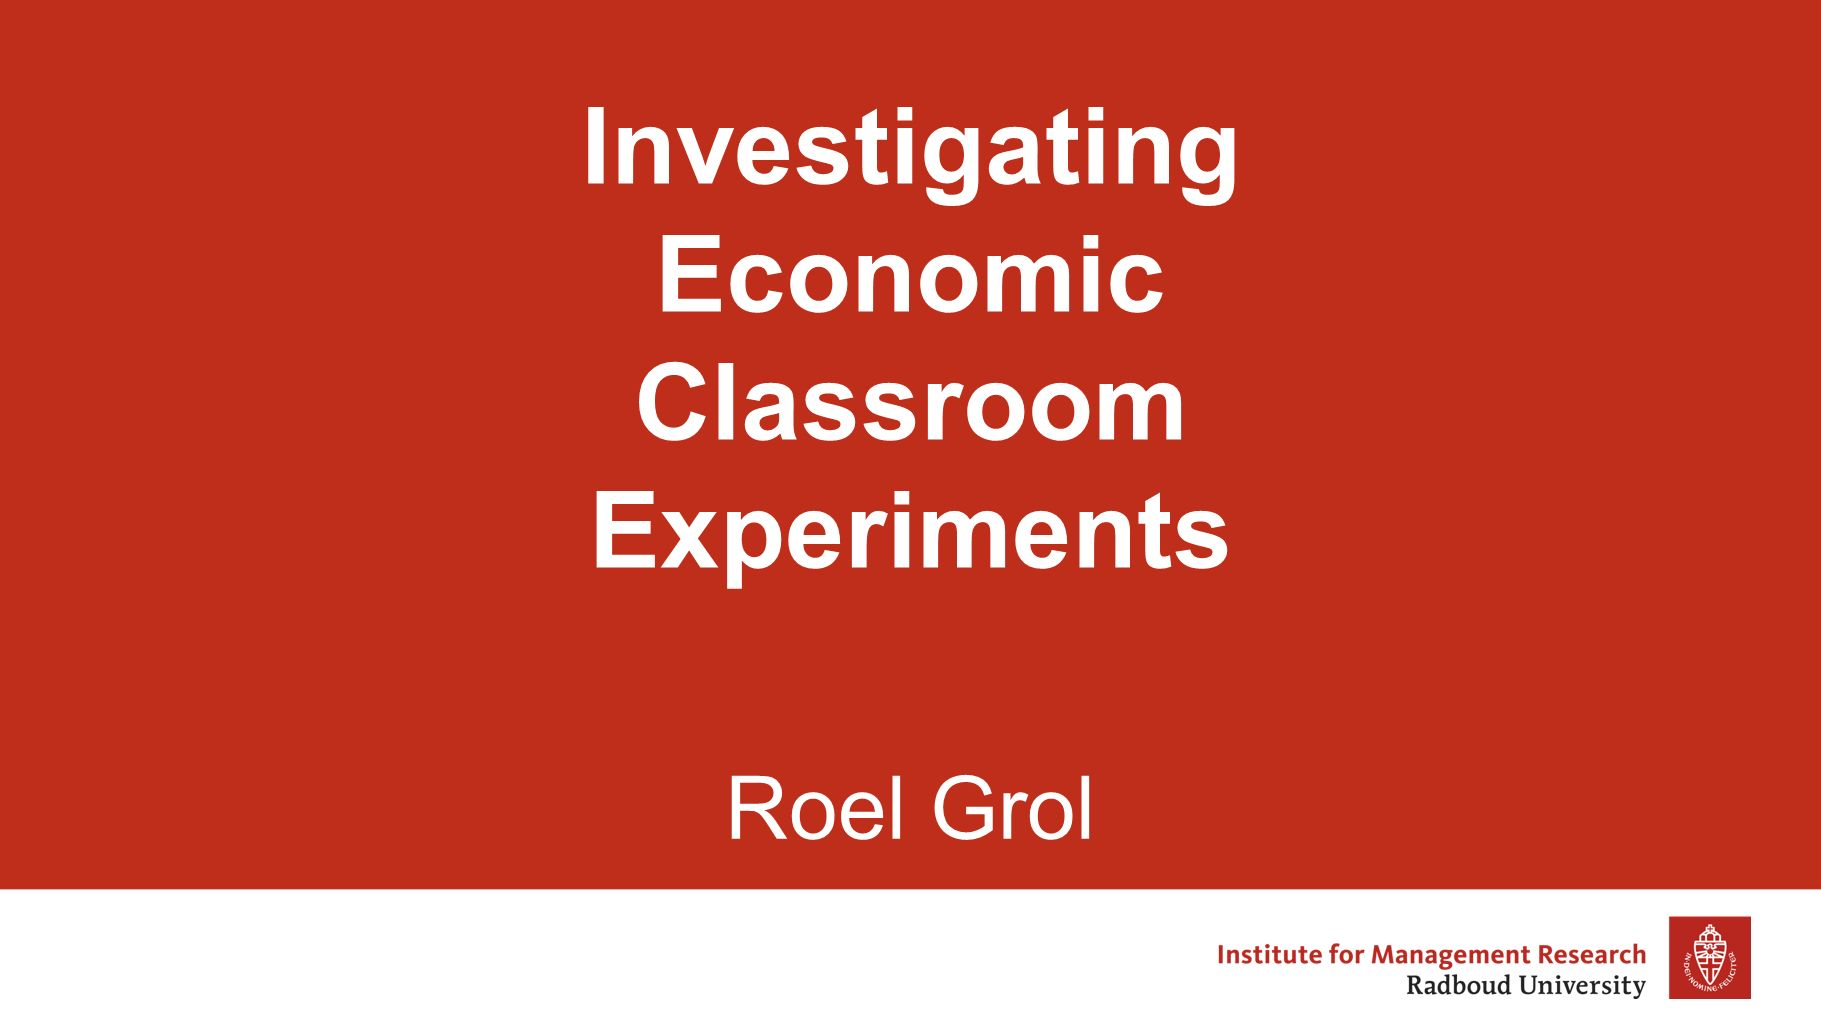 Investigating Economic Classroom Experiments